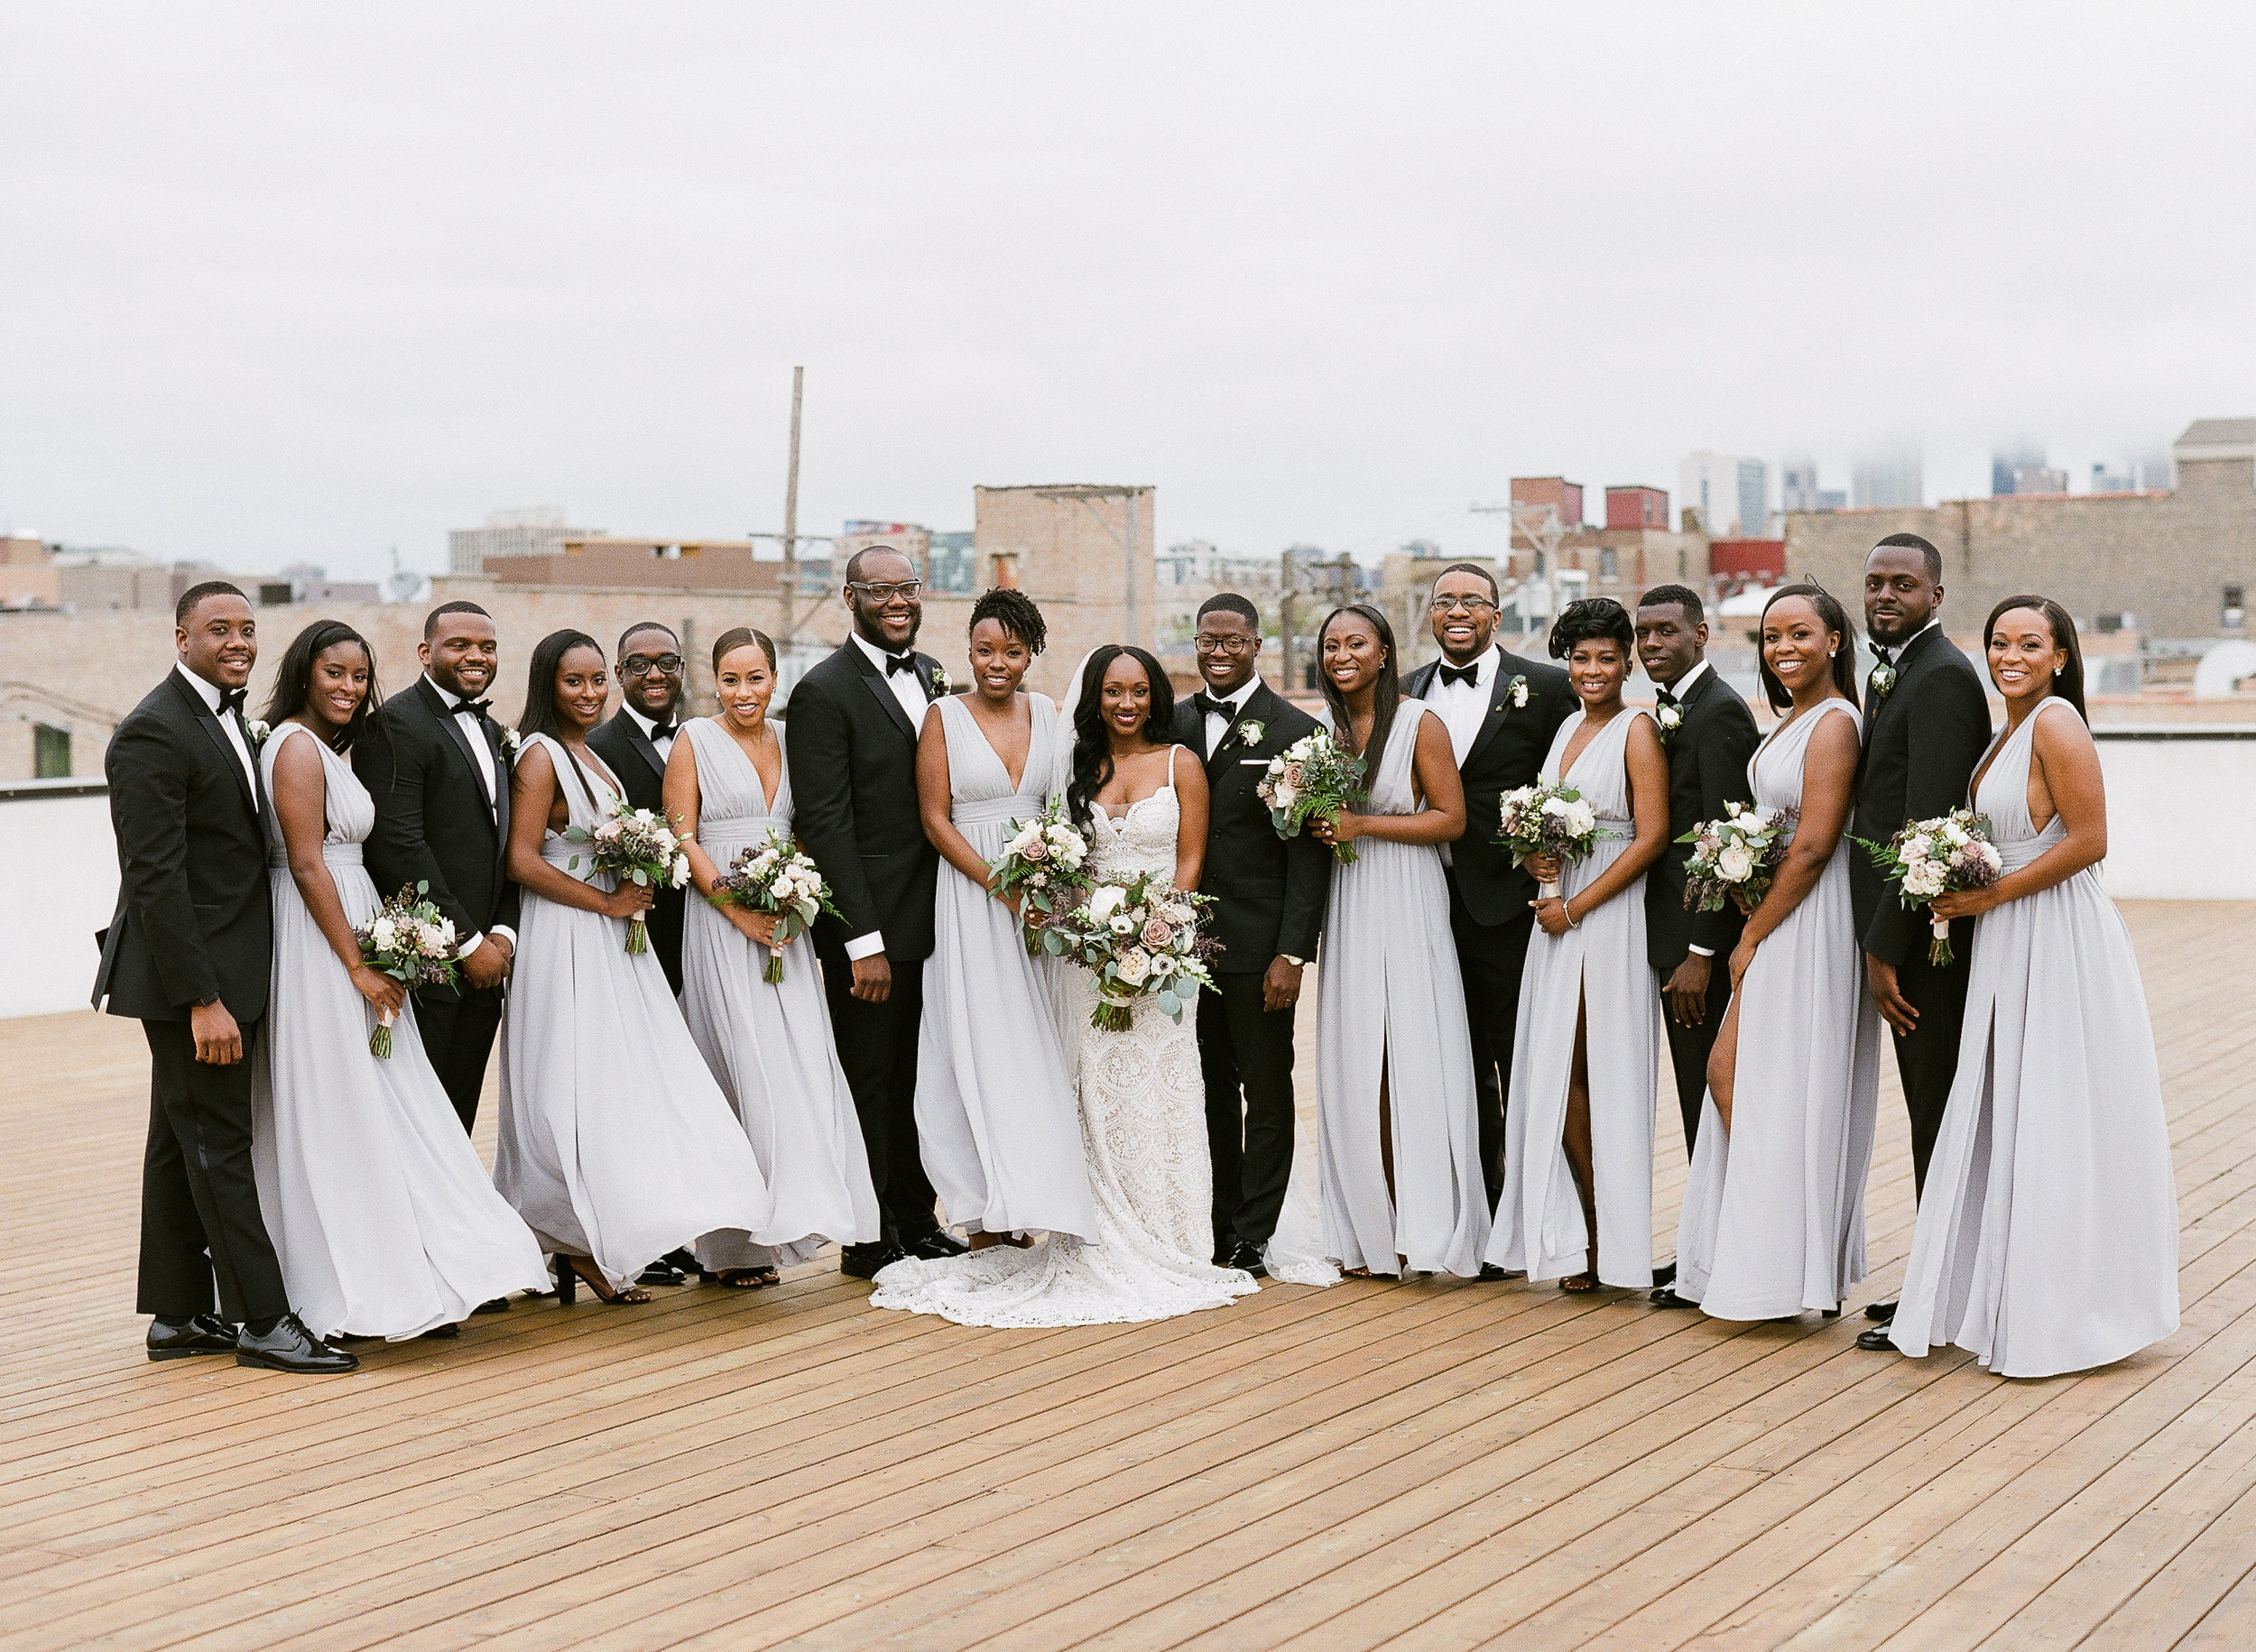 Bridal Party Brandon Chesbro Chicago Wedding-2.jpg